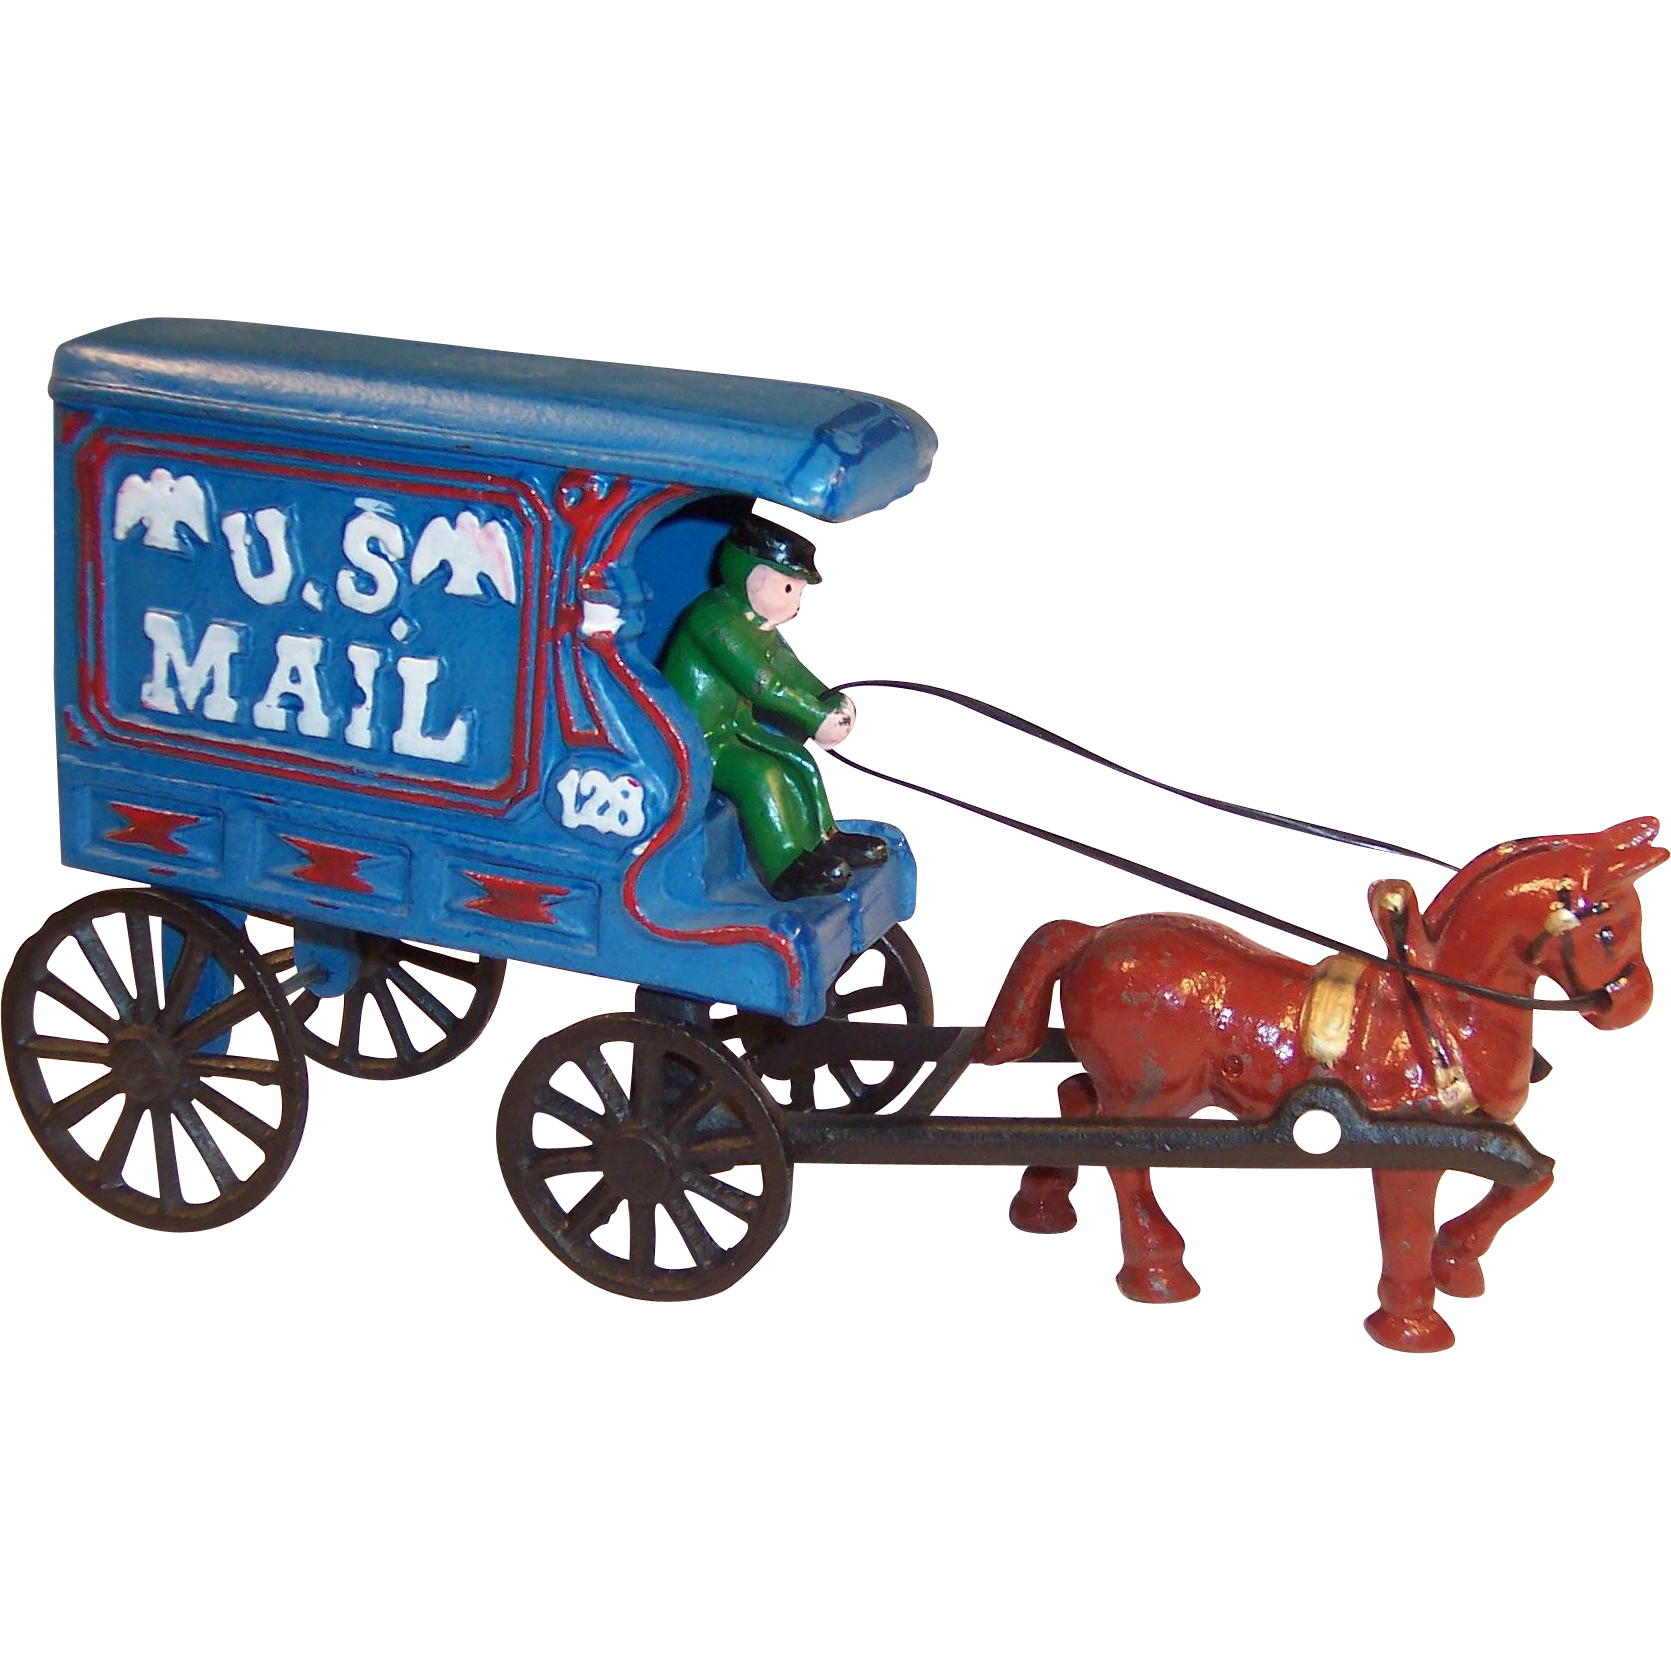 Vintage Cast Iron Replica Horse Drawn Mail Cart